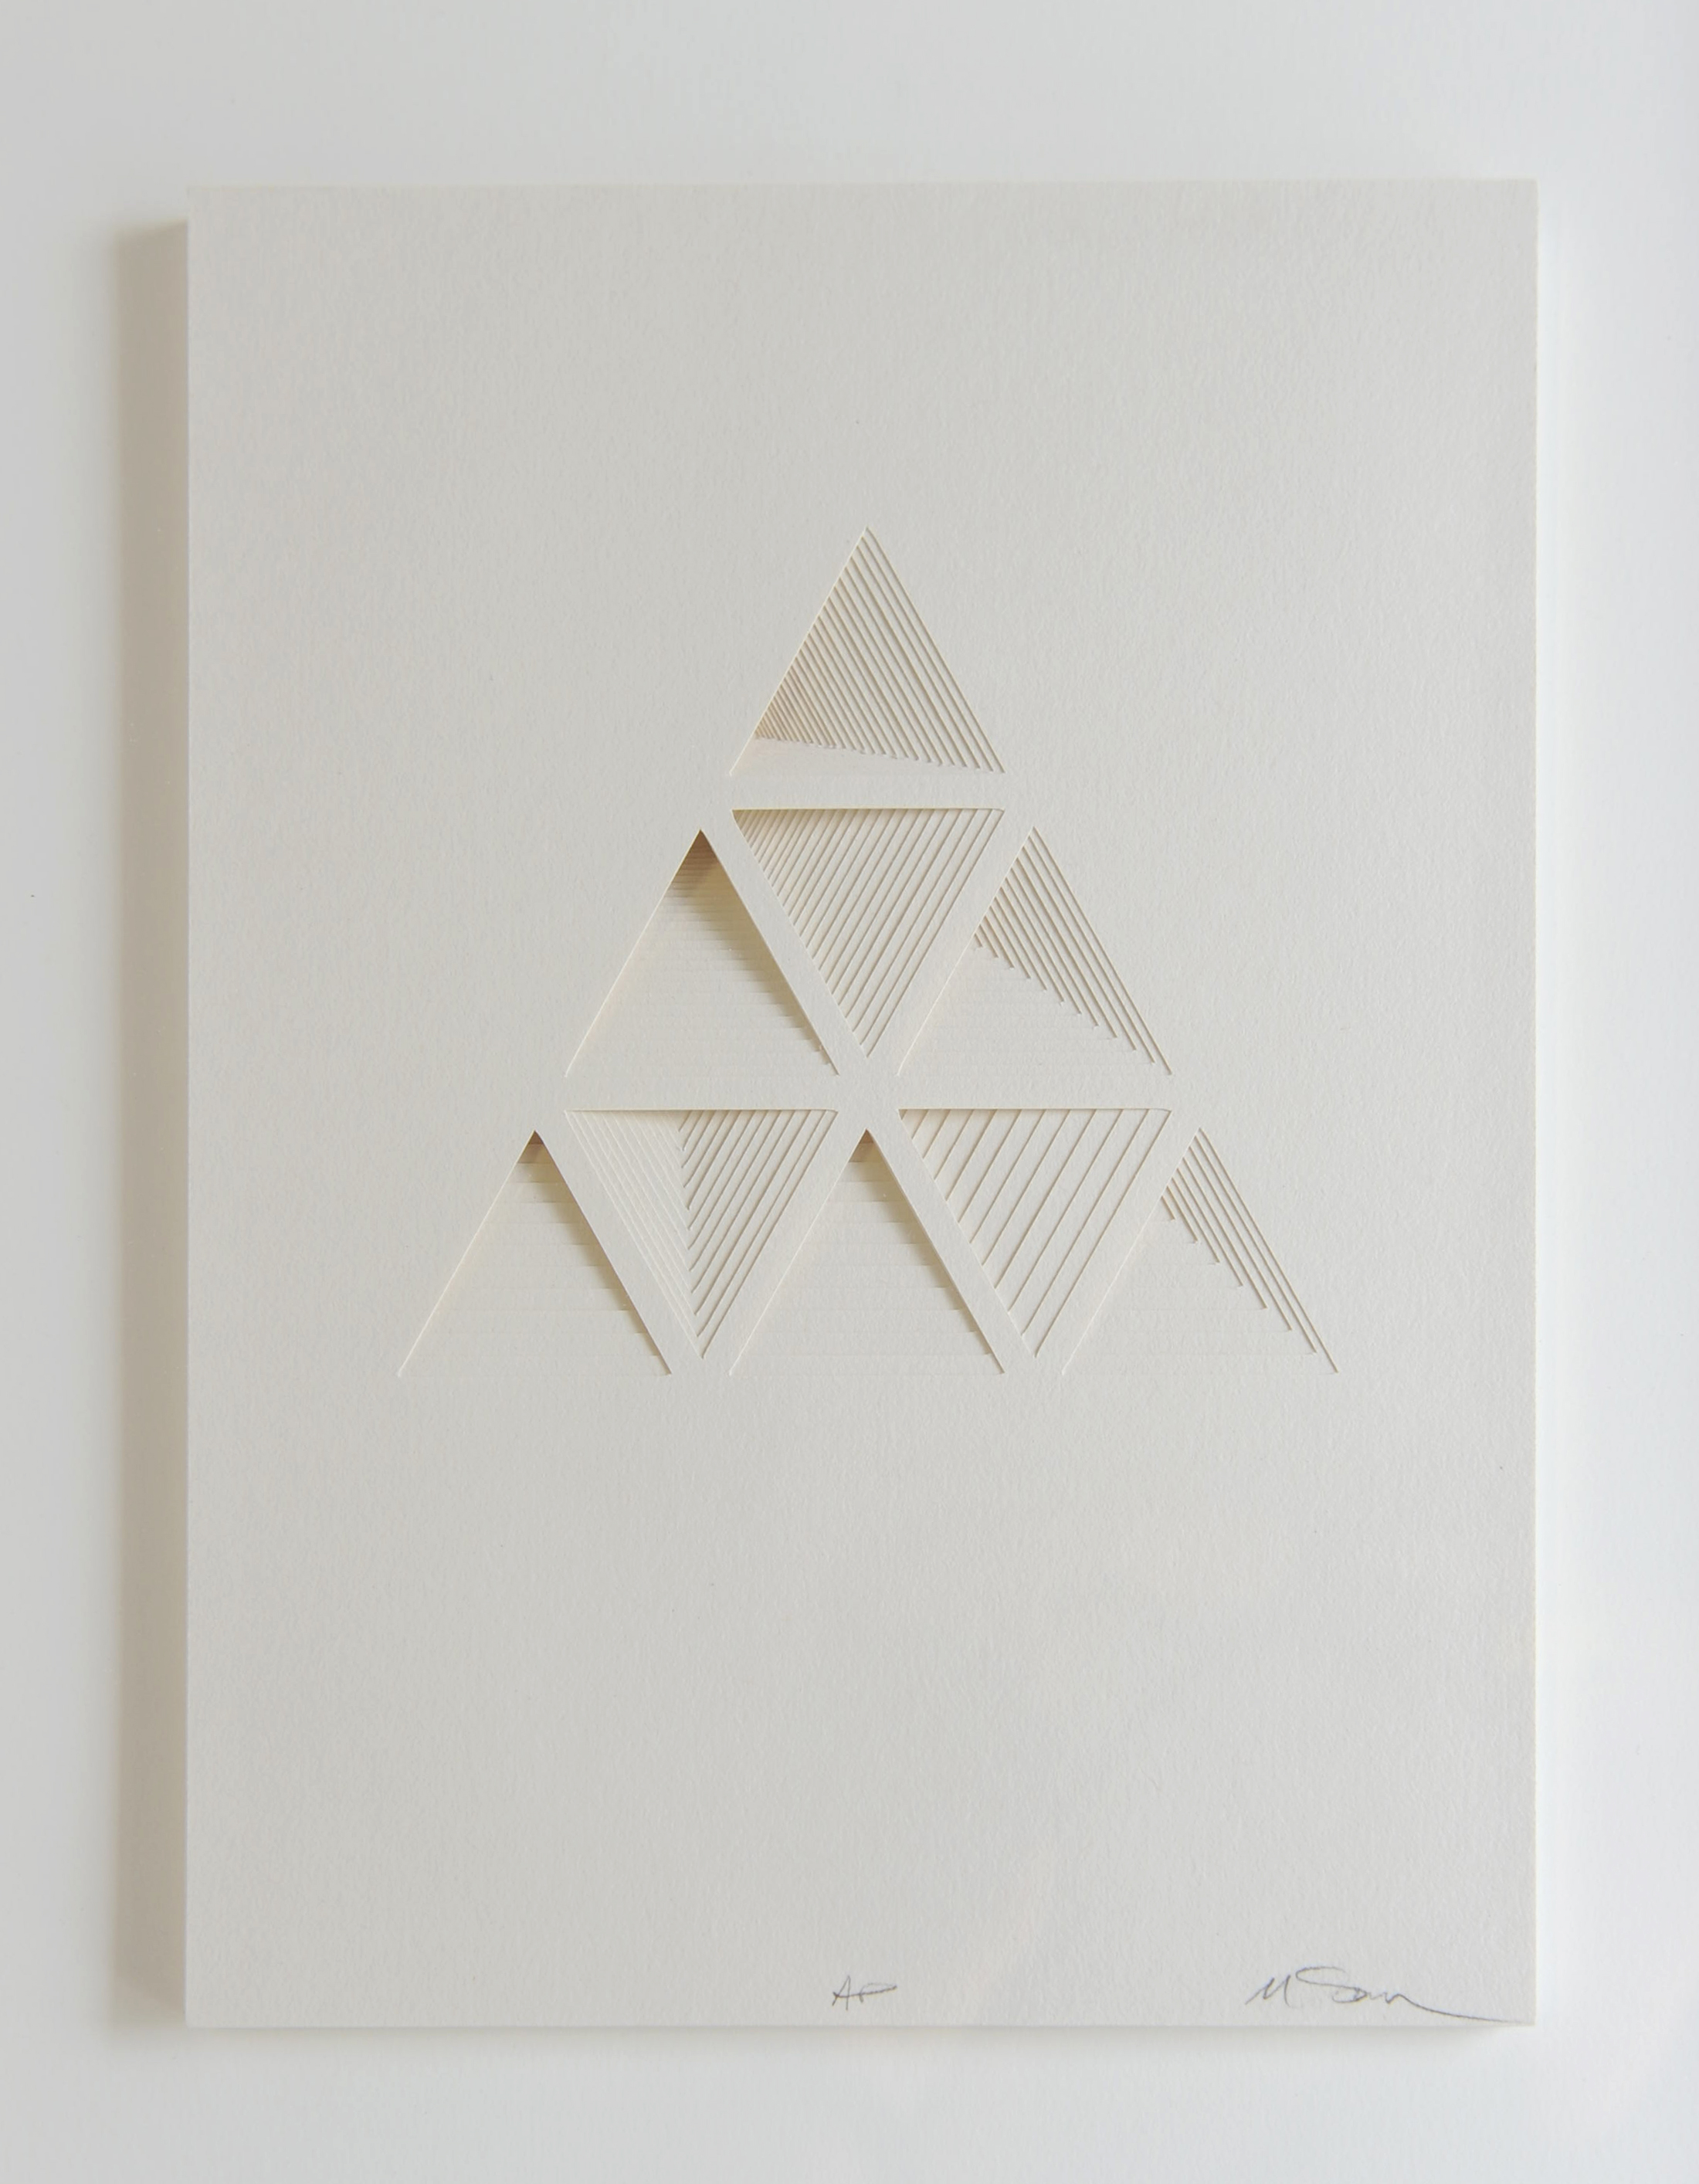 Ghostly Process Series: Triangles Extruded